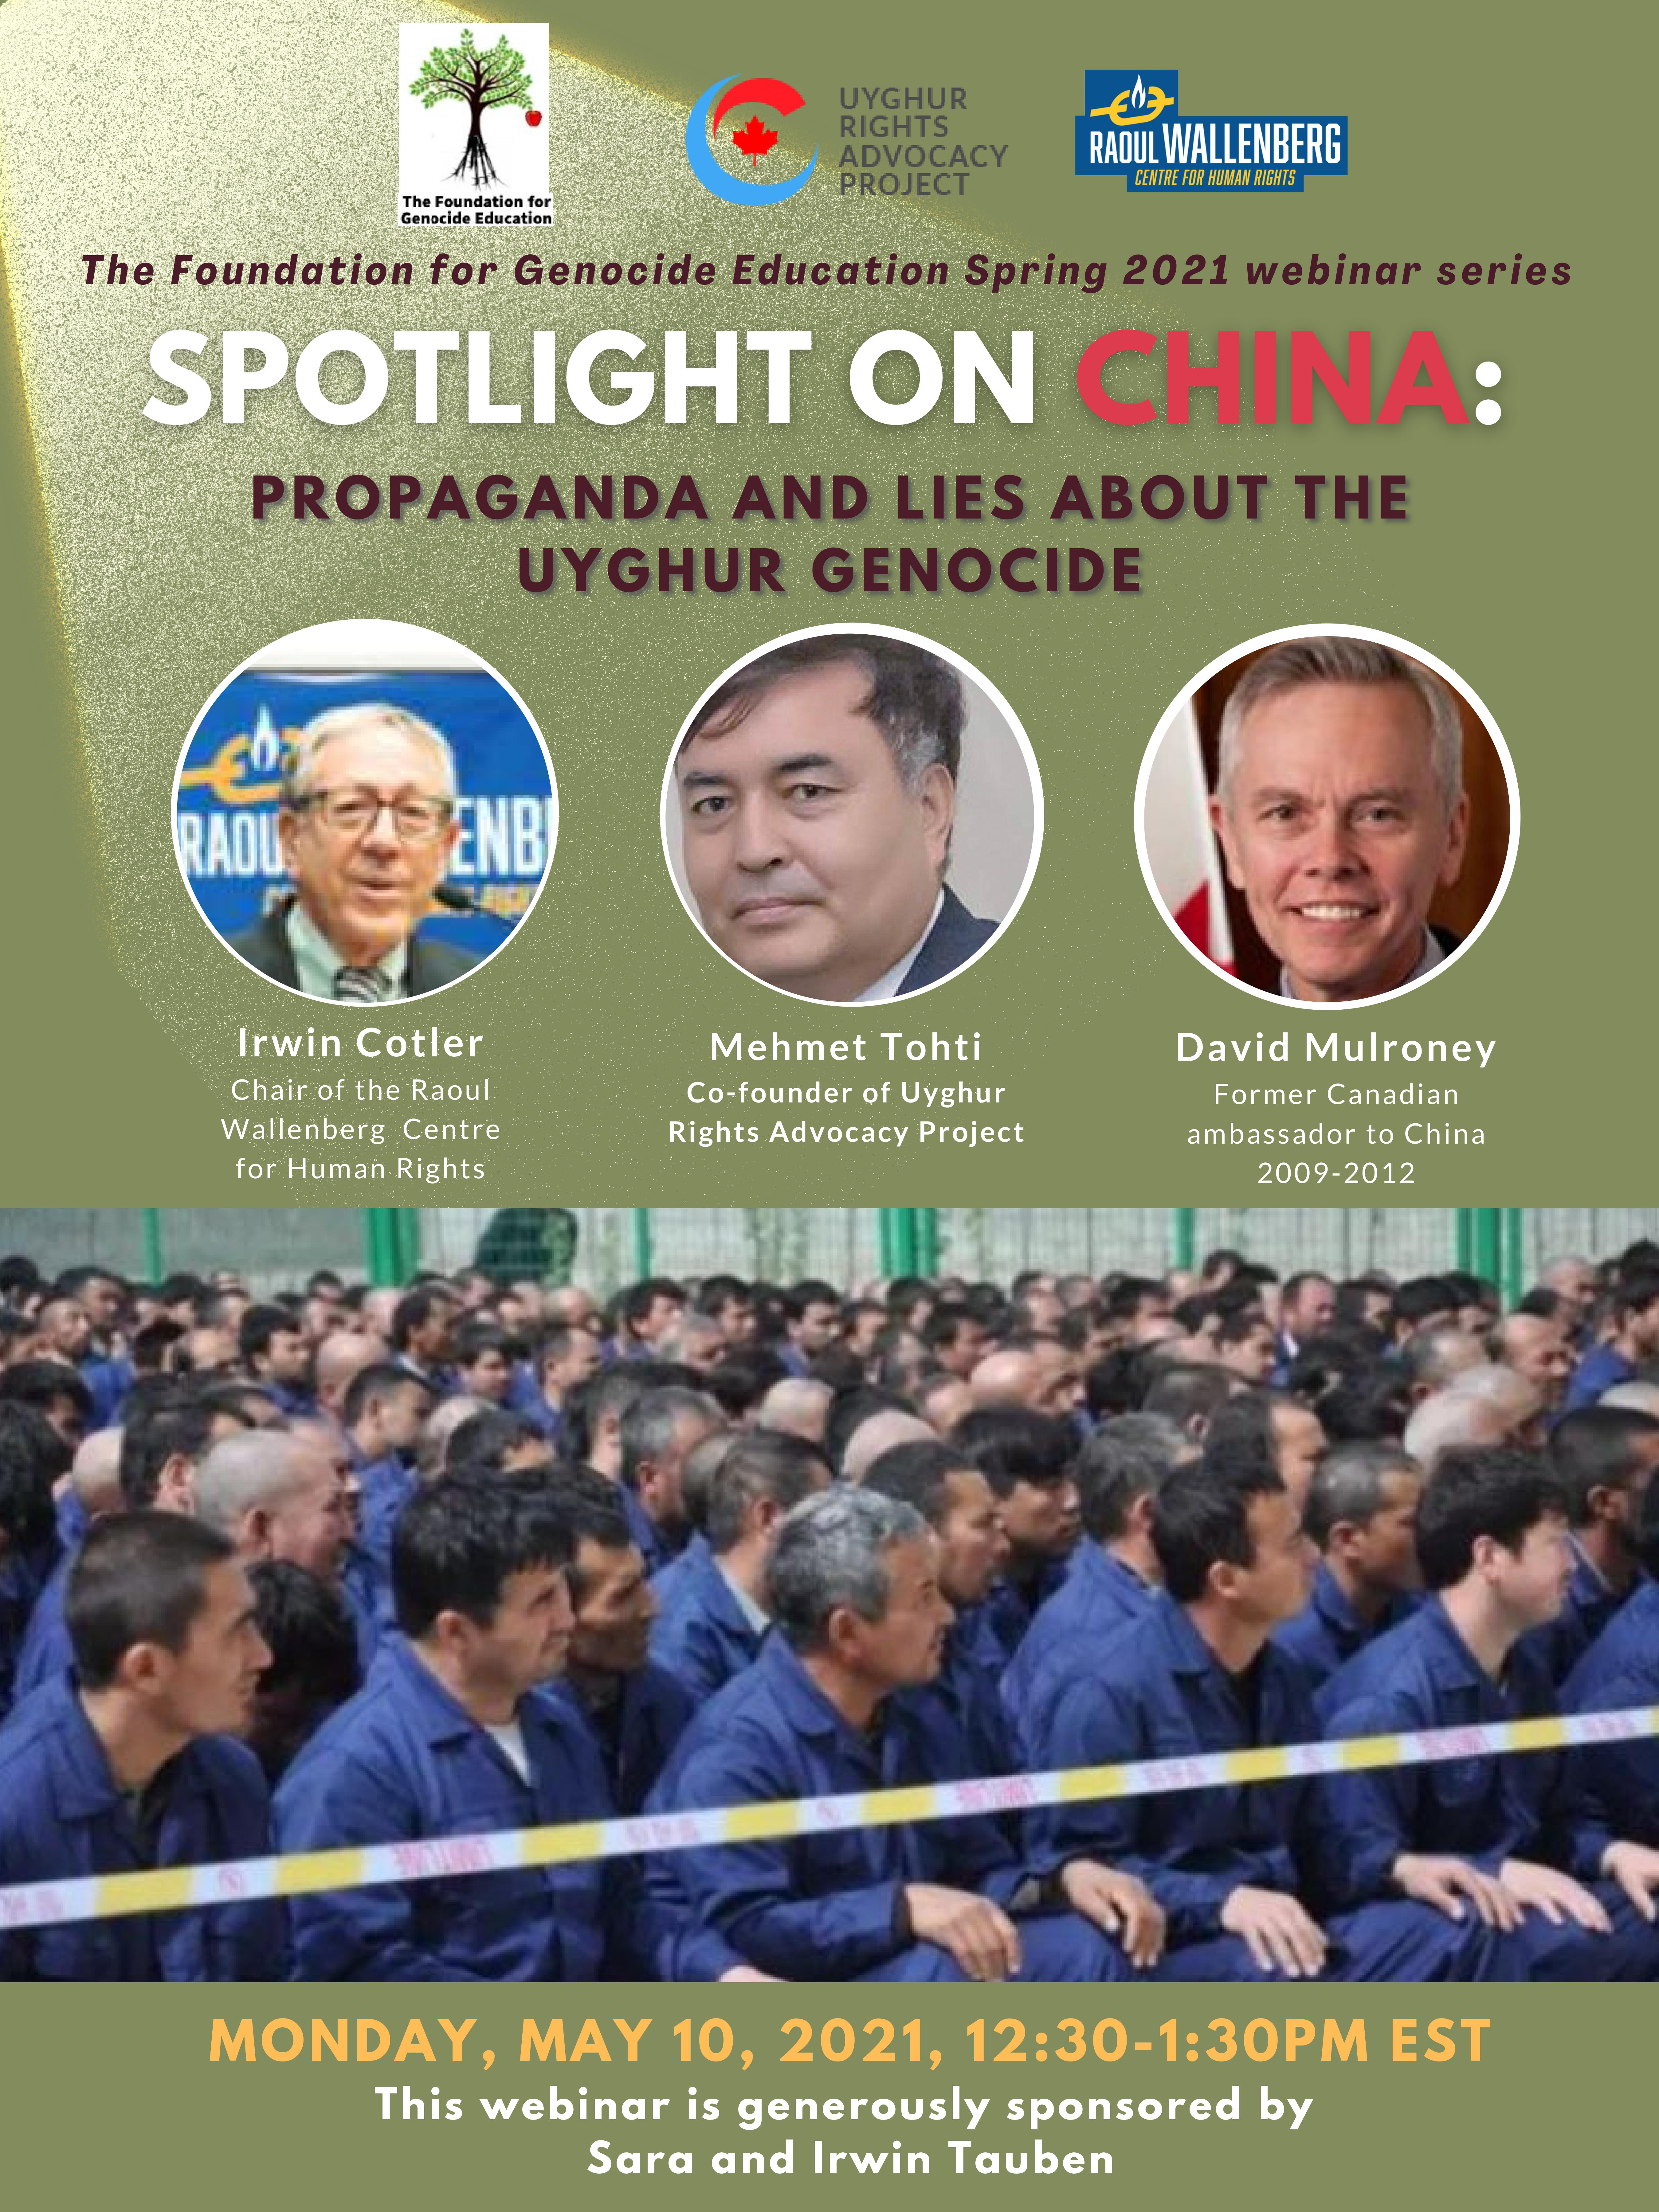 Spotlight on China: Propaganda and Lies about Uyghur Genocide